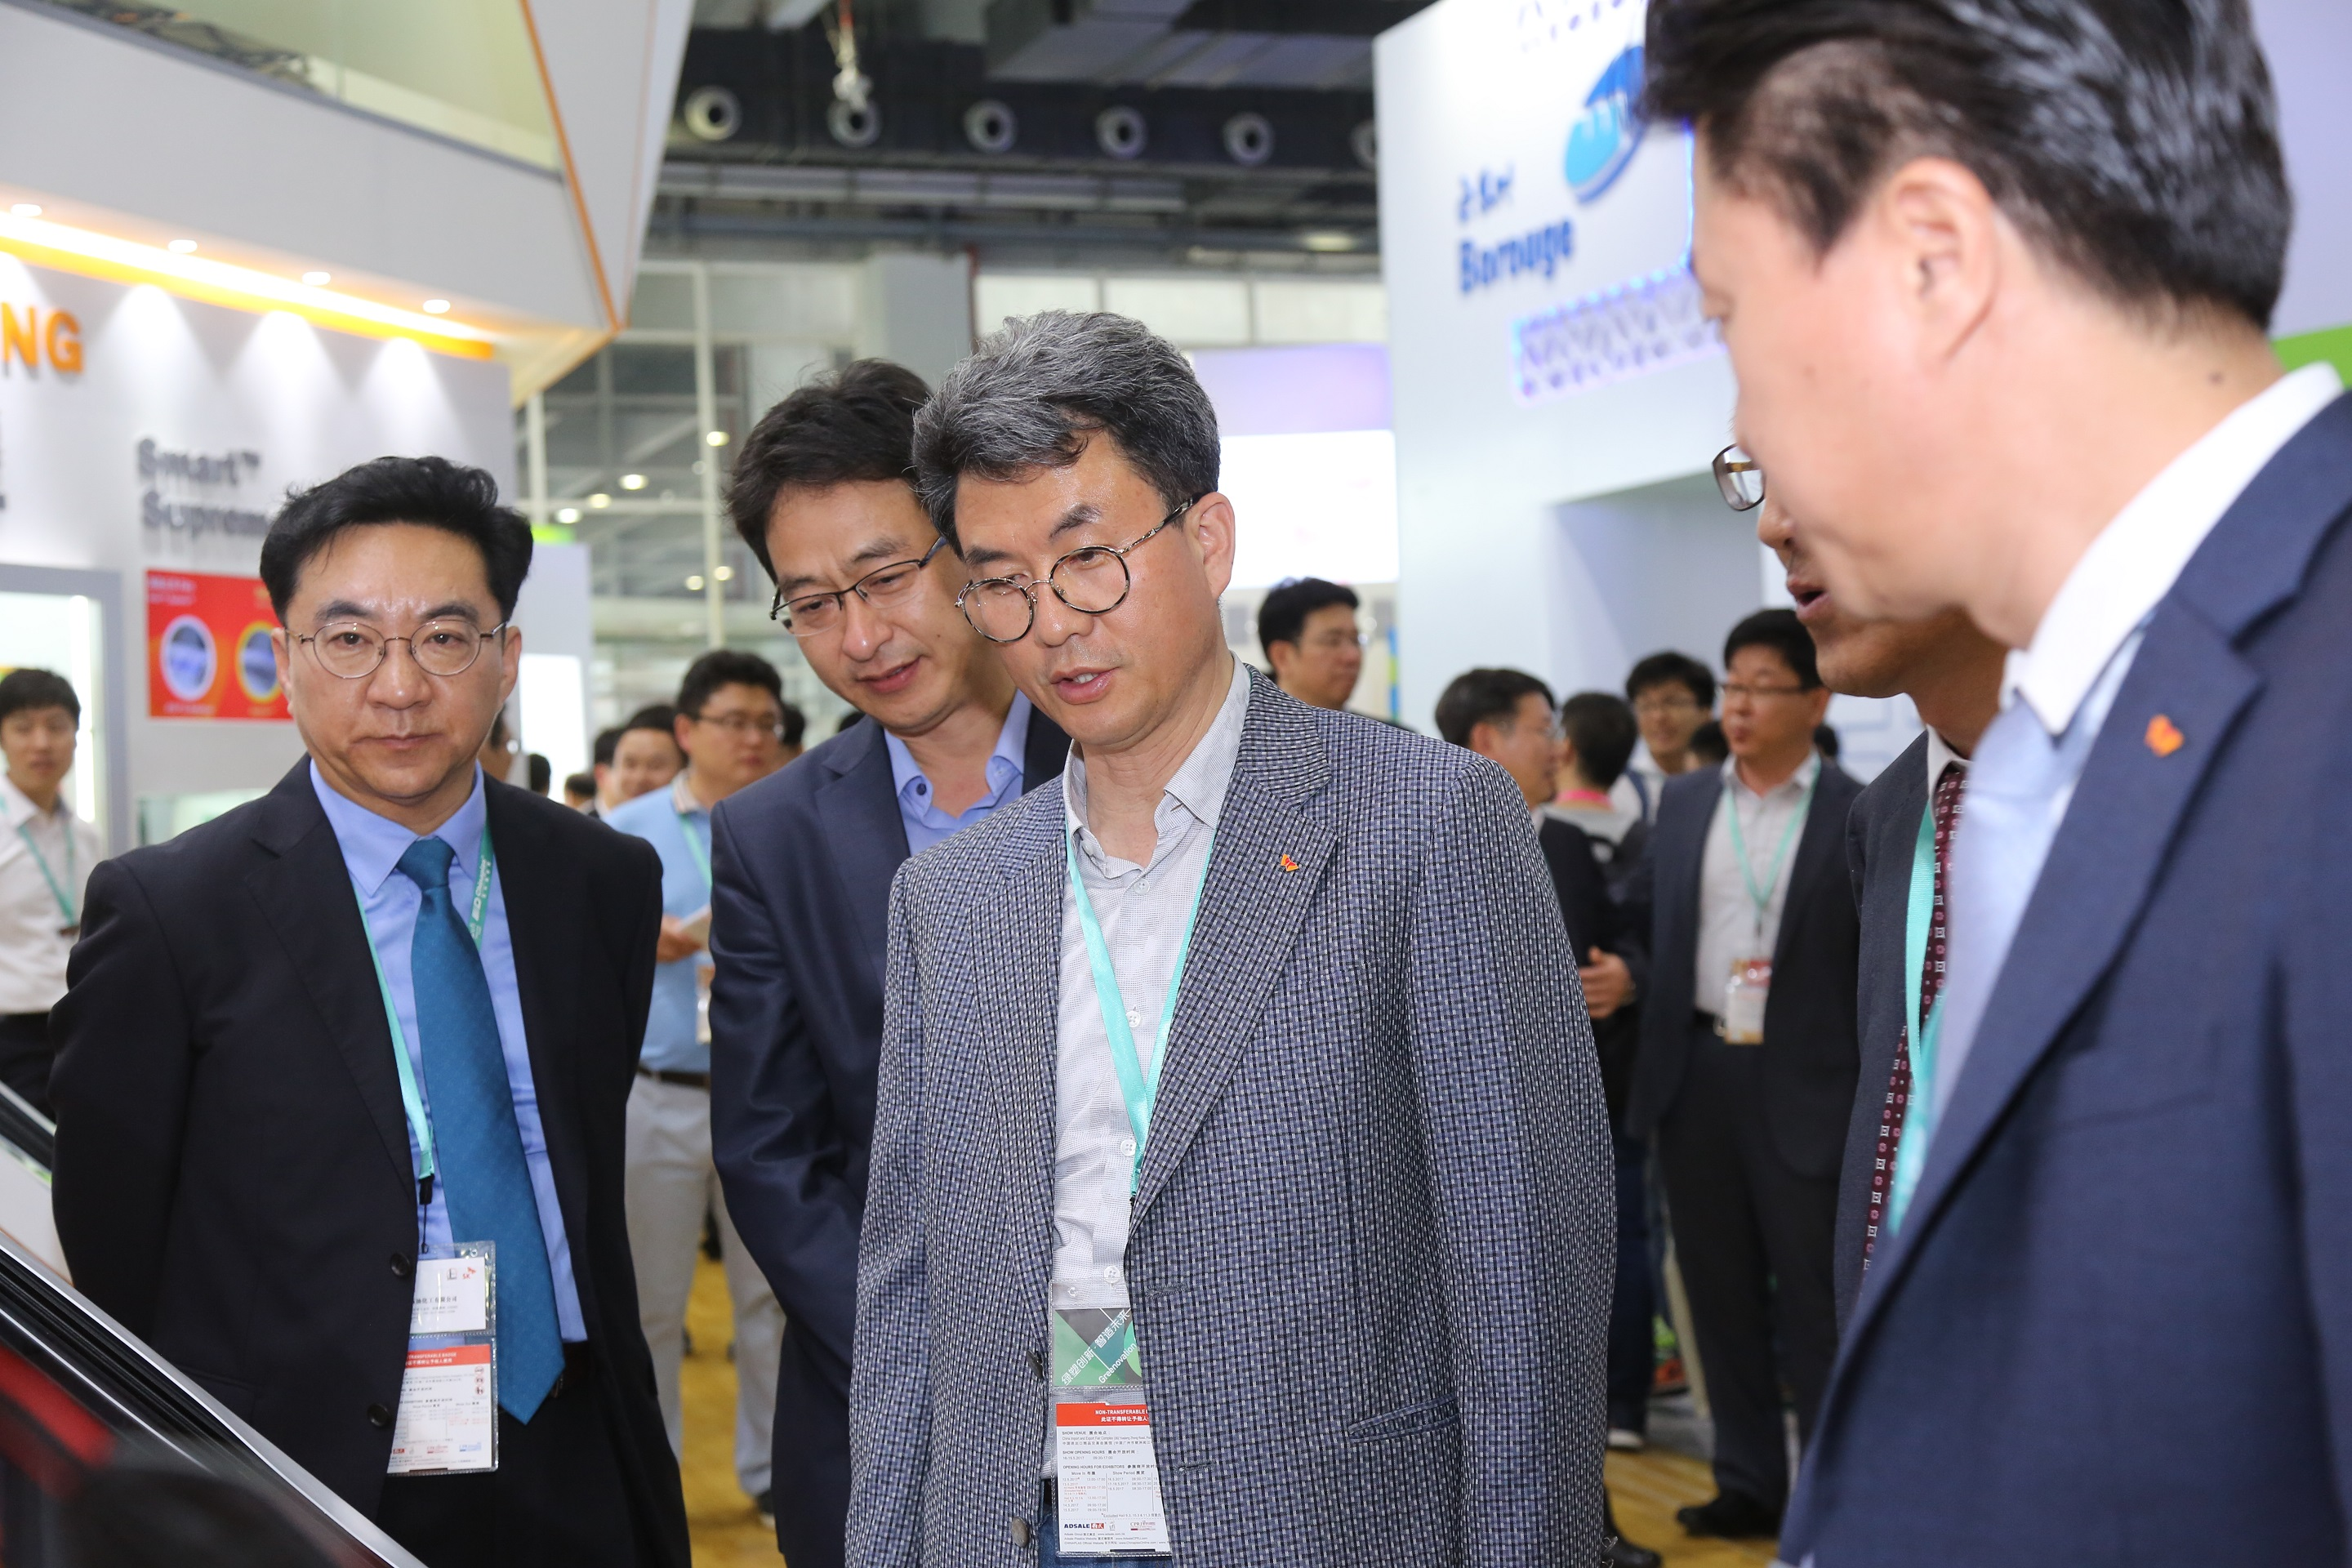 Kim Hyung-kun, president of SK Global Chemical is looking around the exhibition hall.